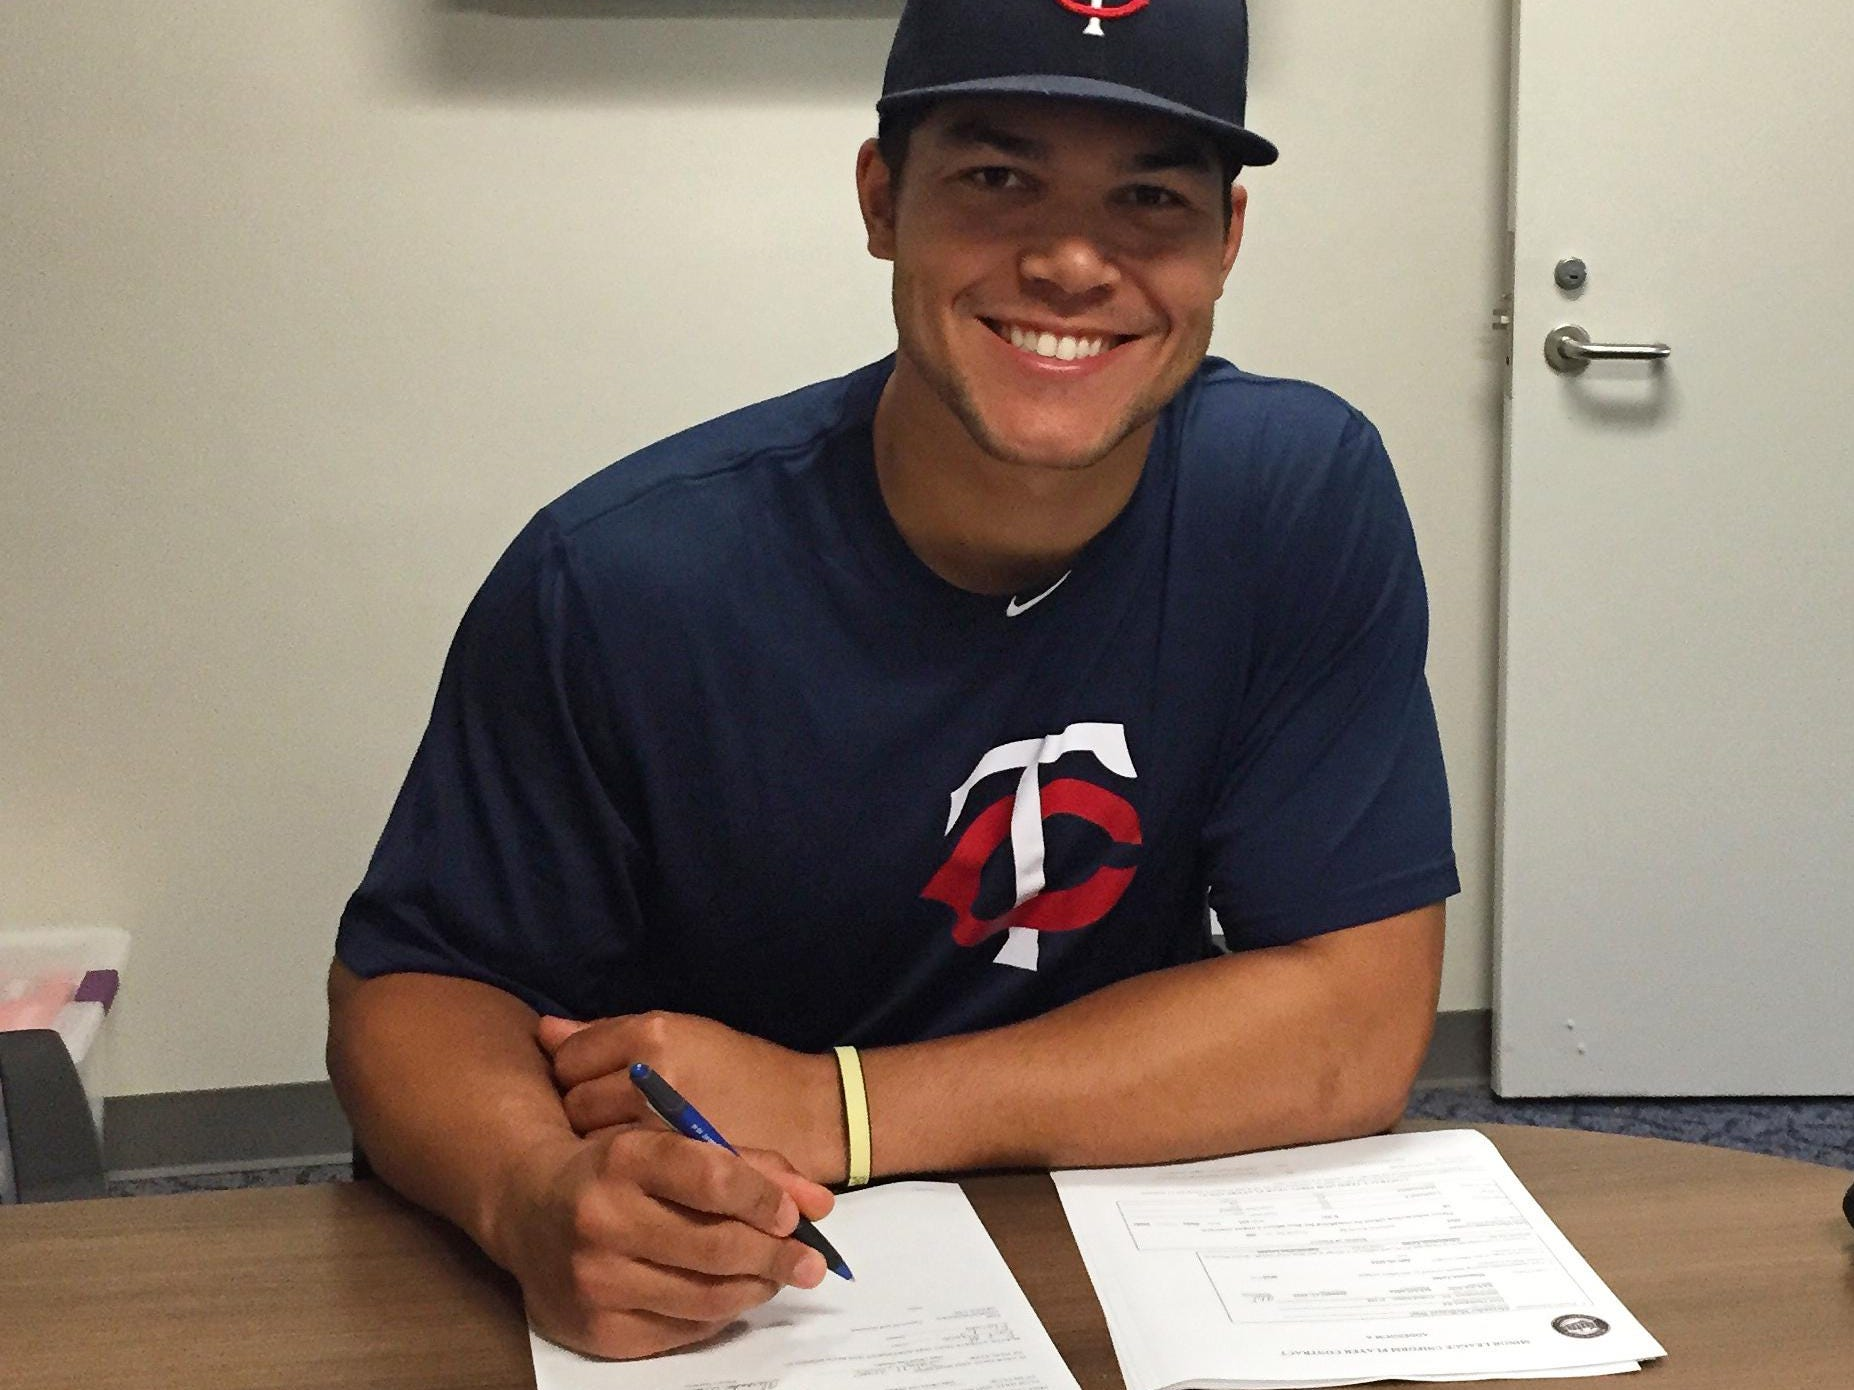 Former Blackman High baseball standout Zander Wiel signed with the Minnesota Twins on Saturday.